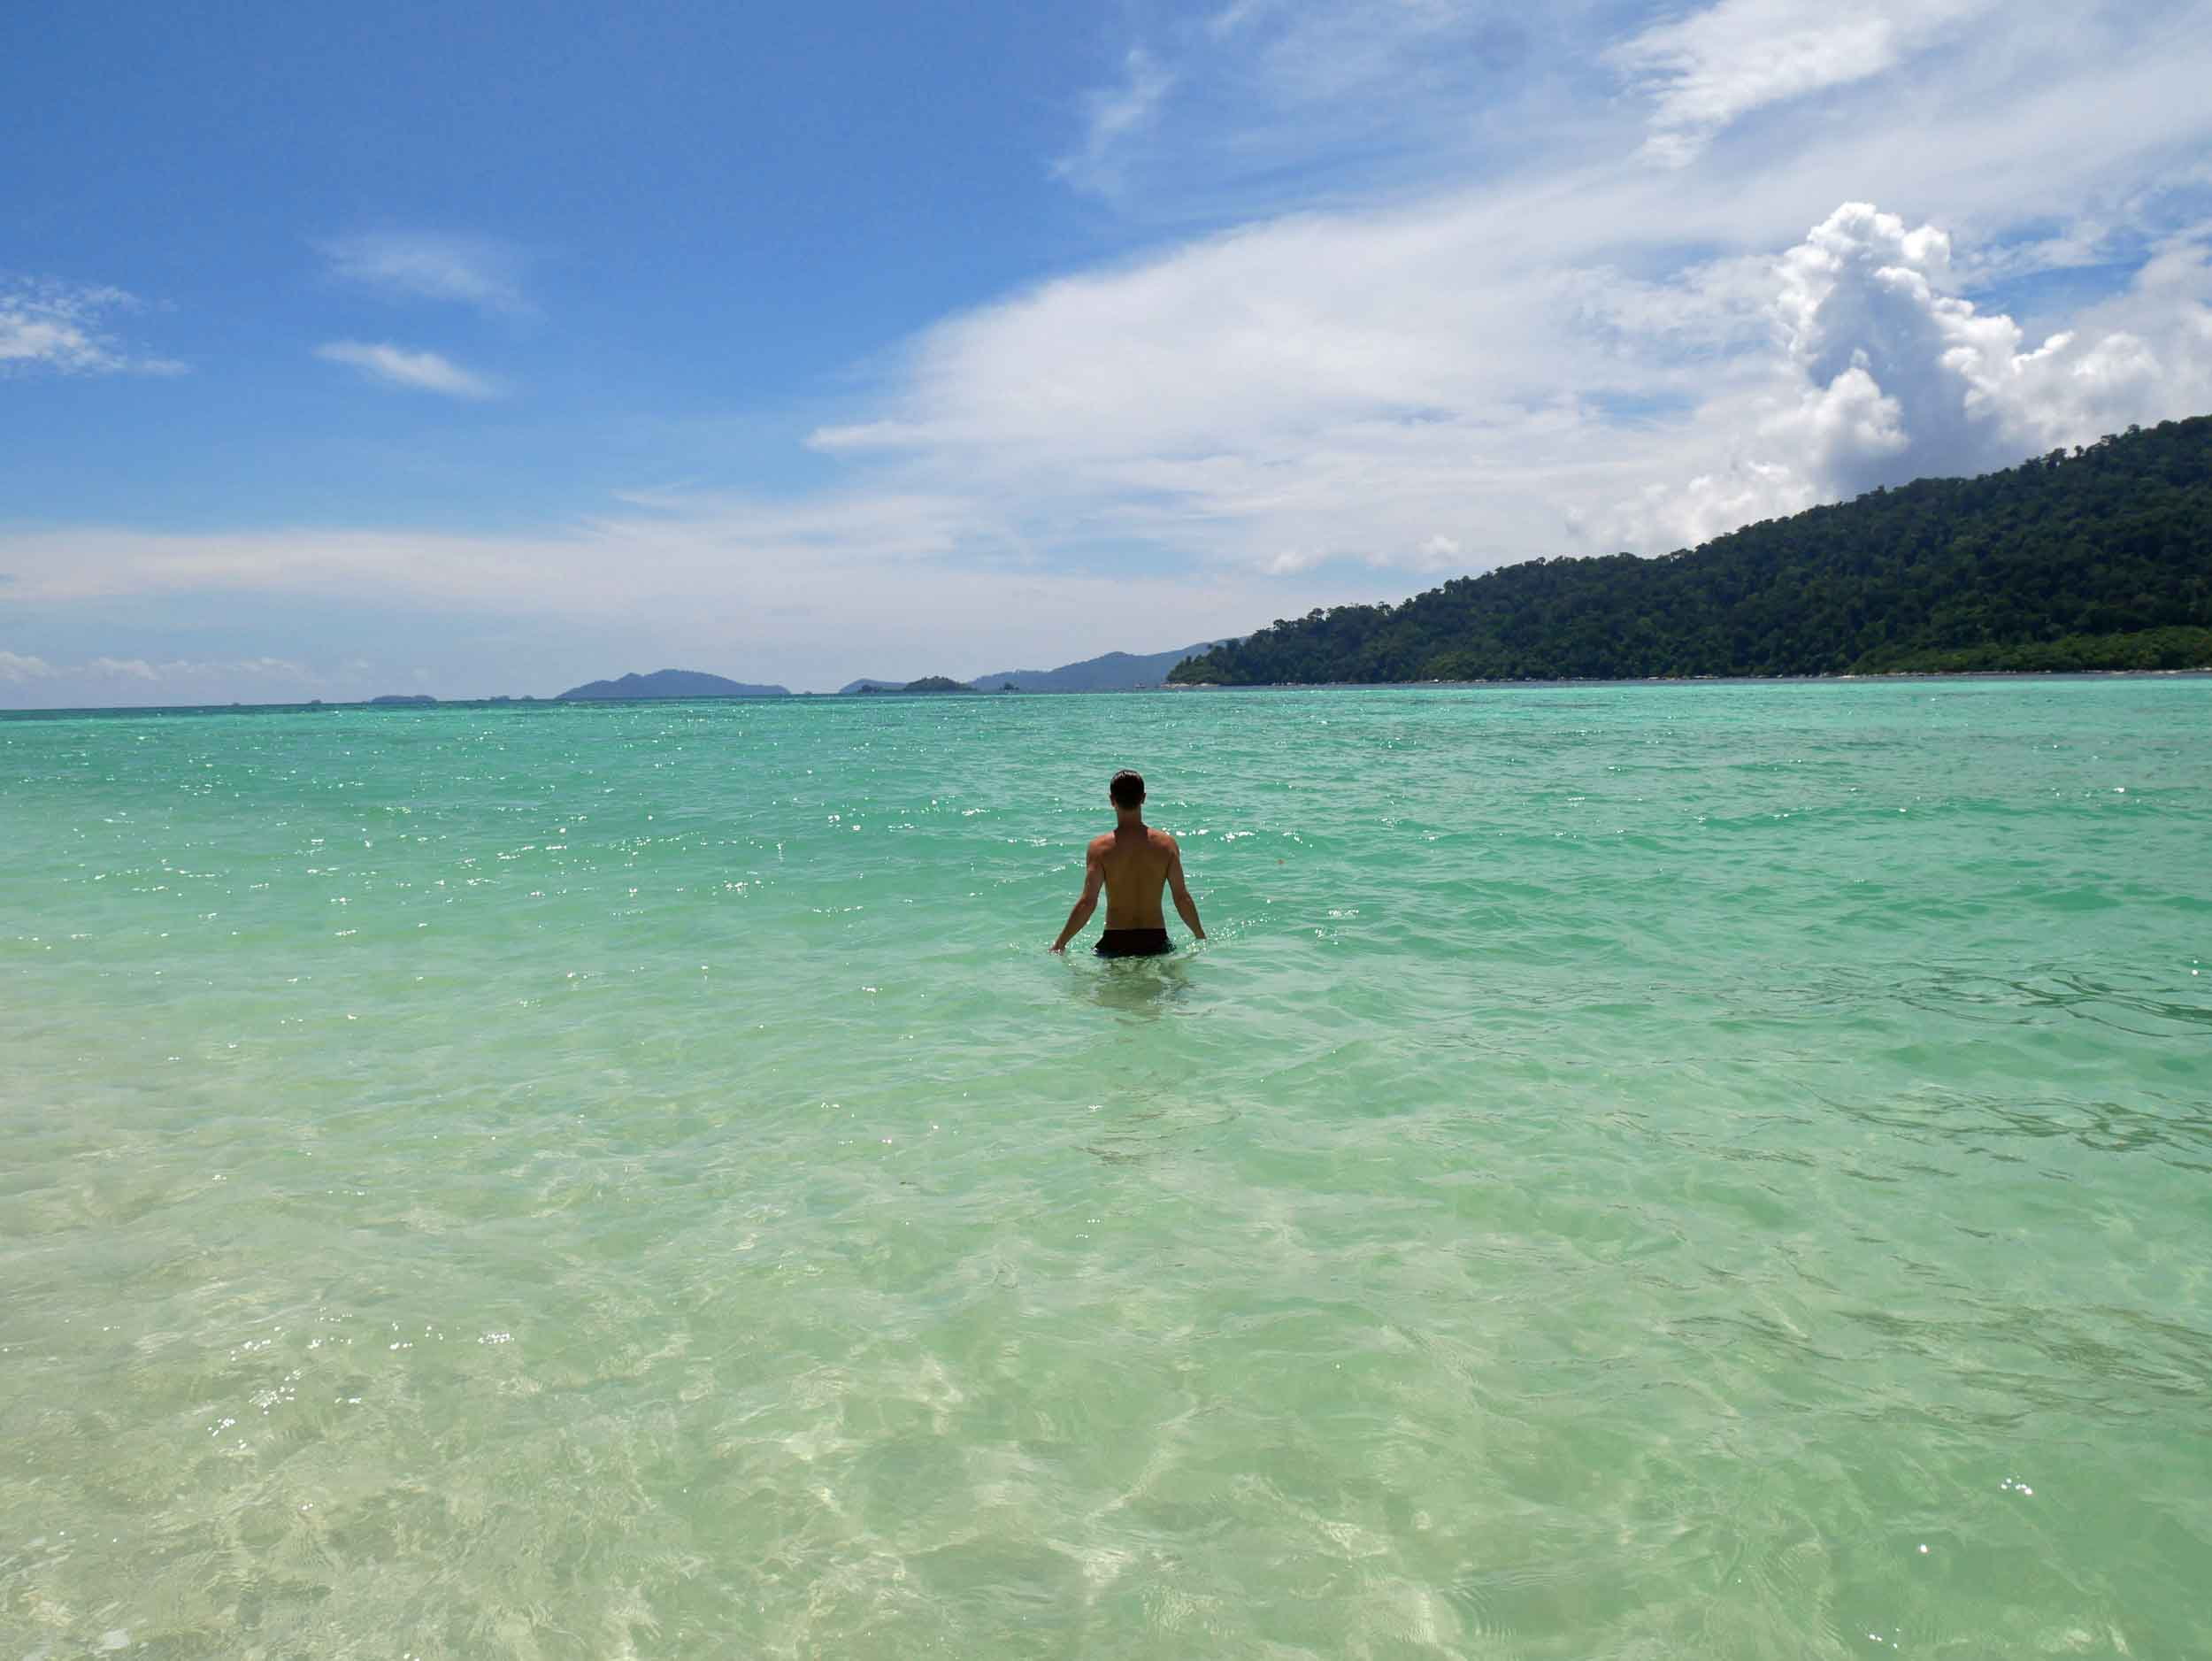 On Ko Lanta, we swam and stayed submerged in the beautiful clear water to beat the tropical heat.